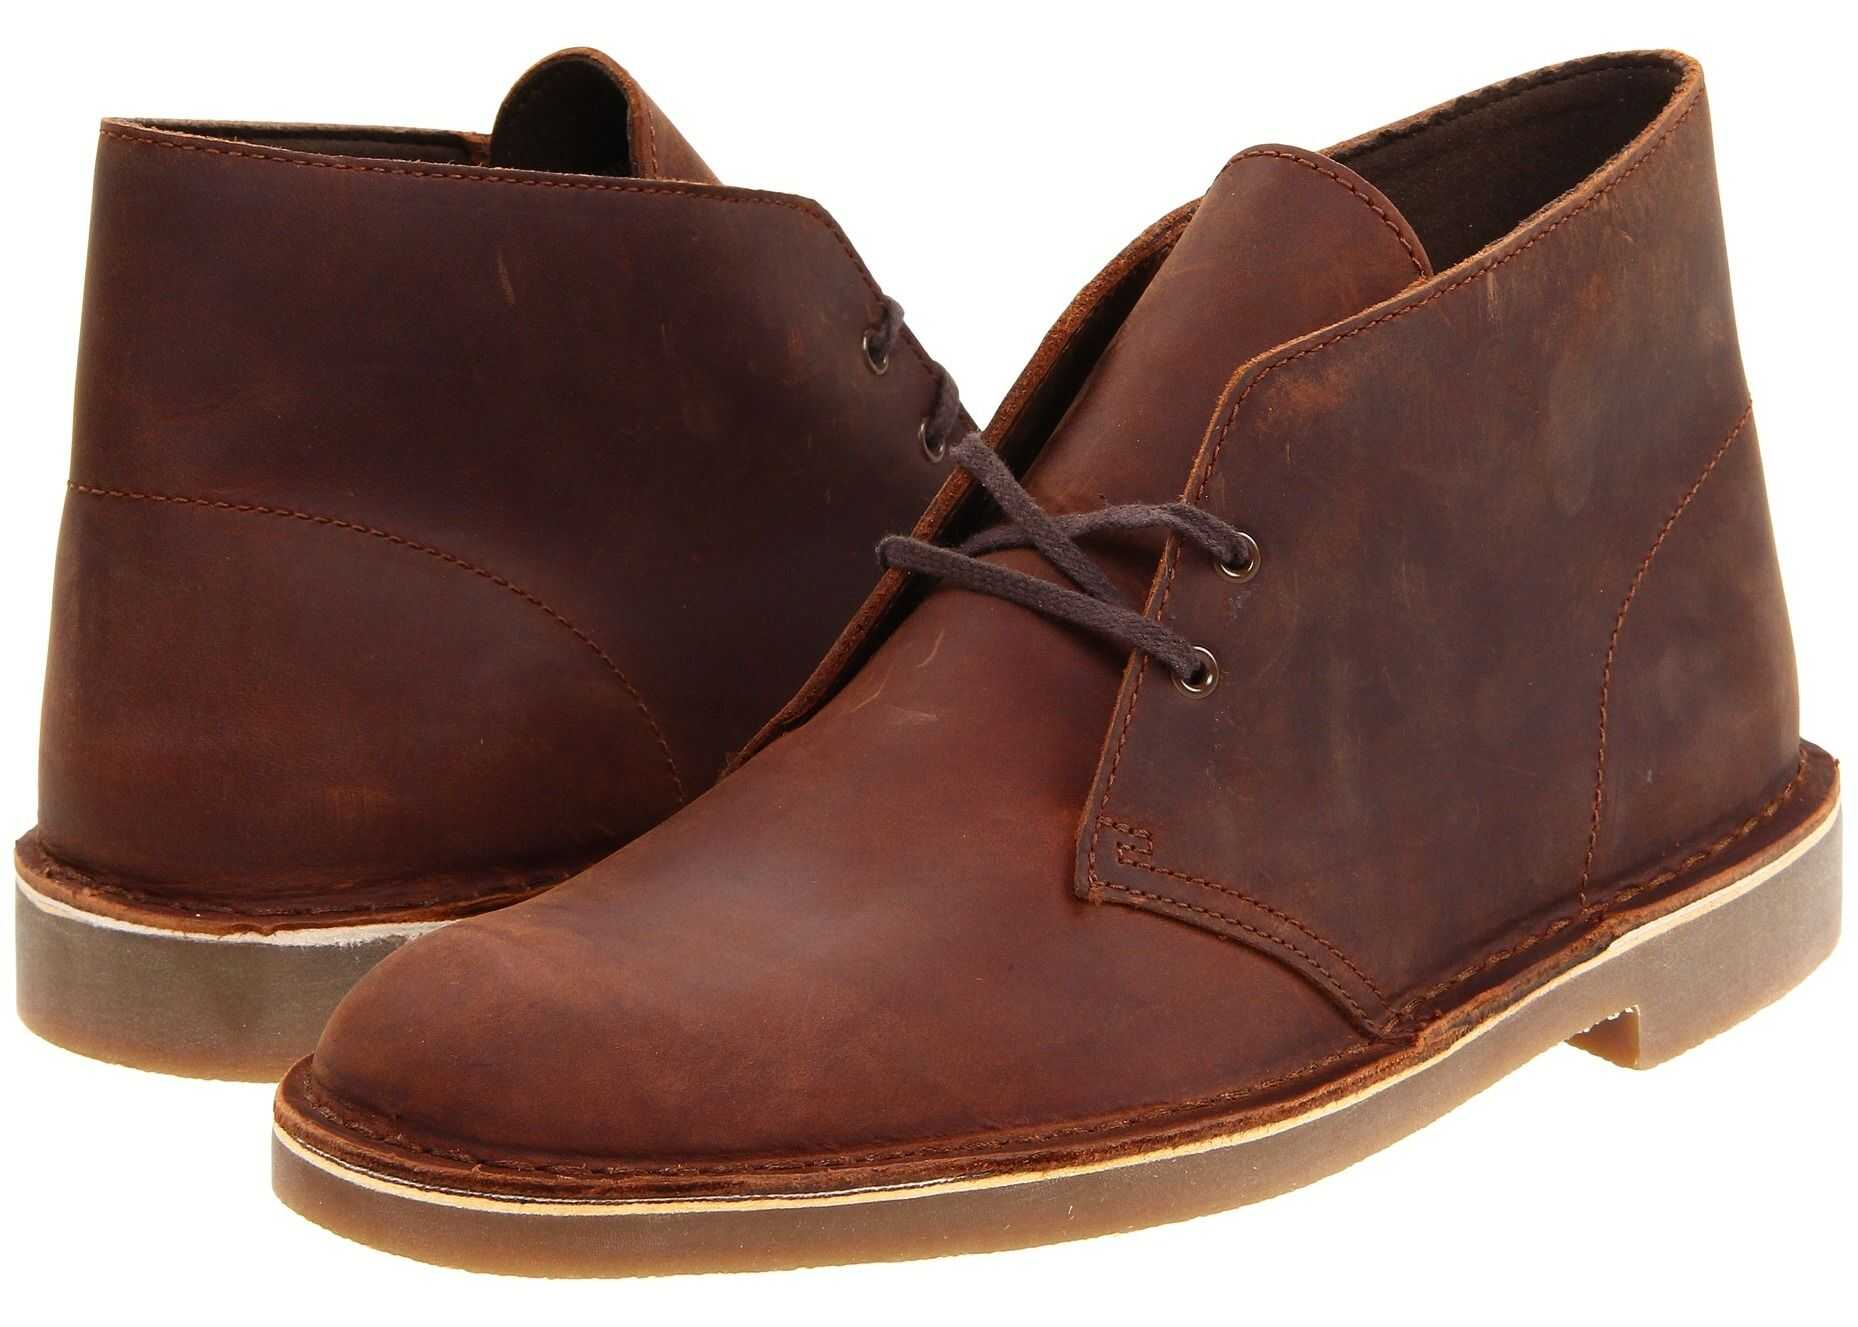 Clarks Bushacre 2 Brown Leather